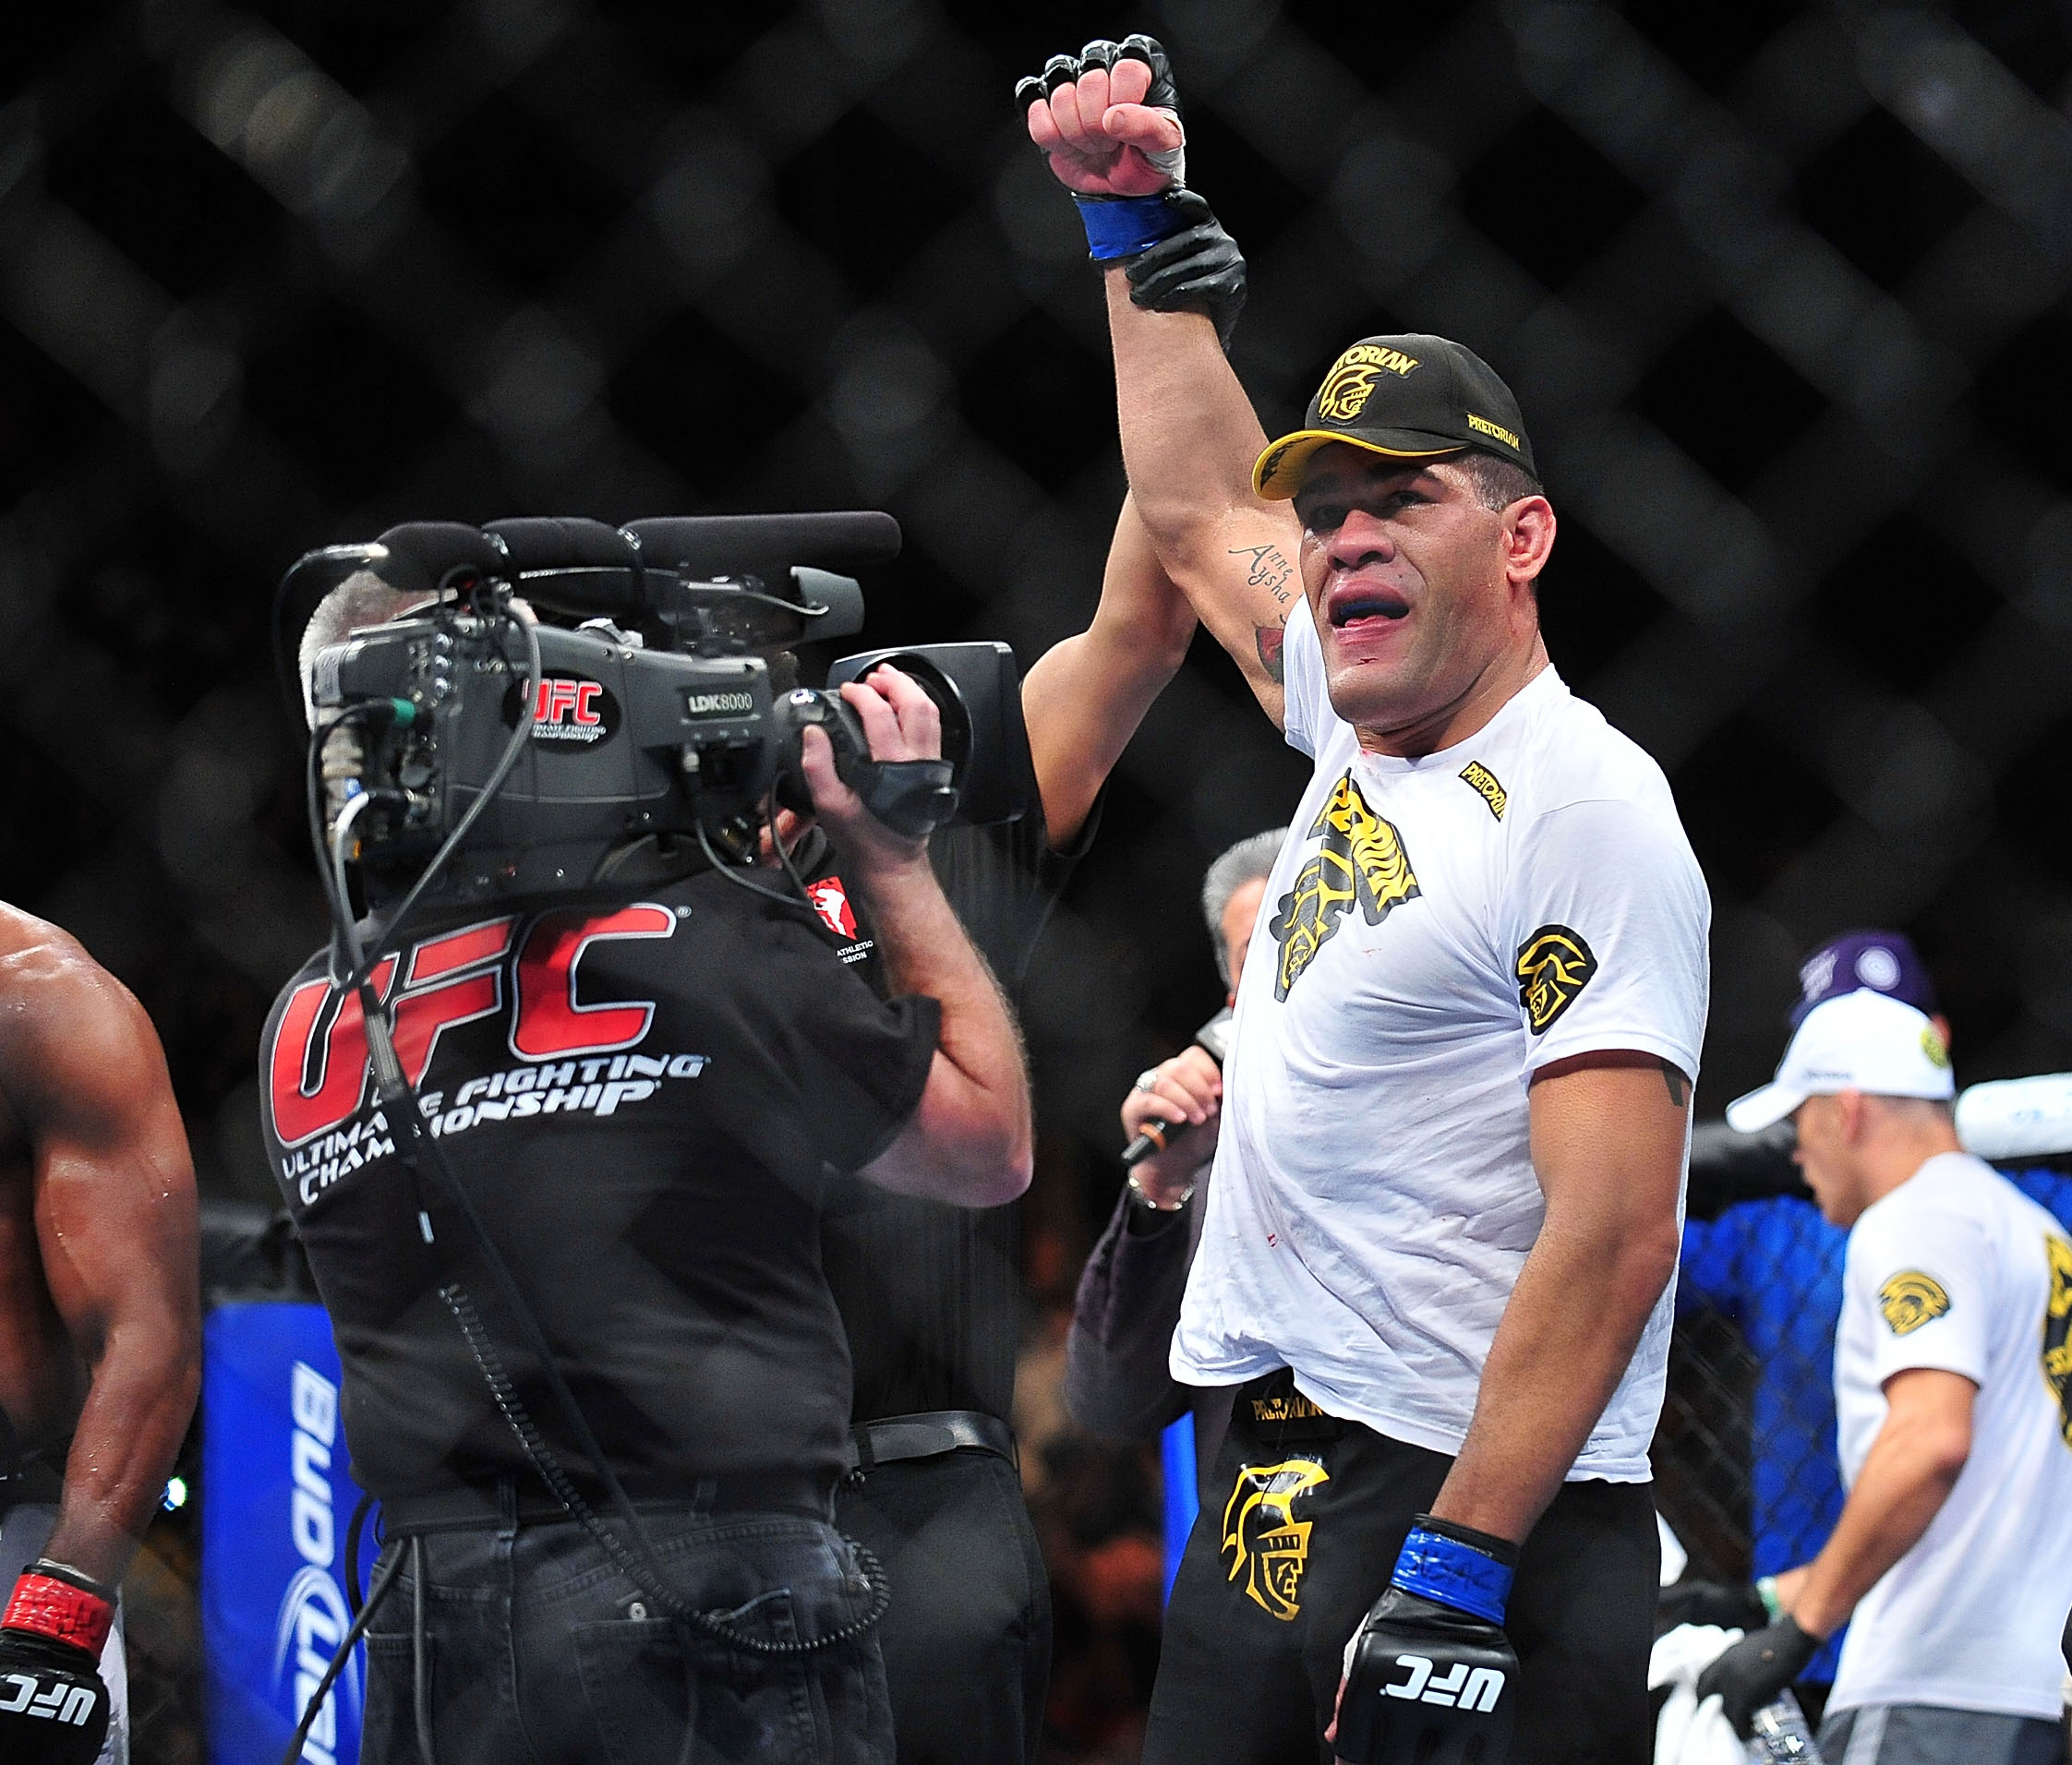 Antonio Silva celebrates after his win over Alistair Overeem at UFC 156. (USA Today)